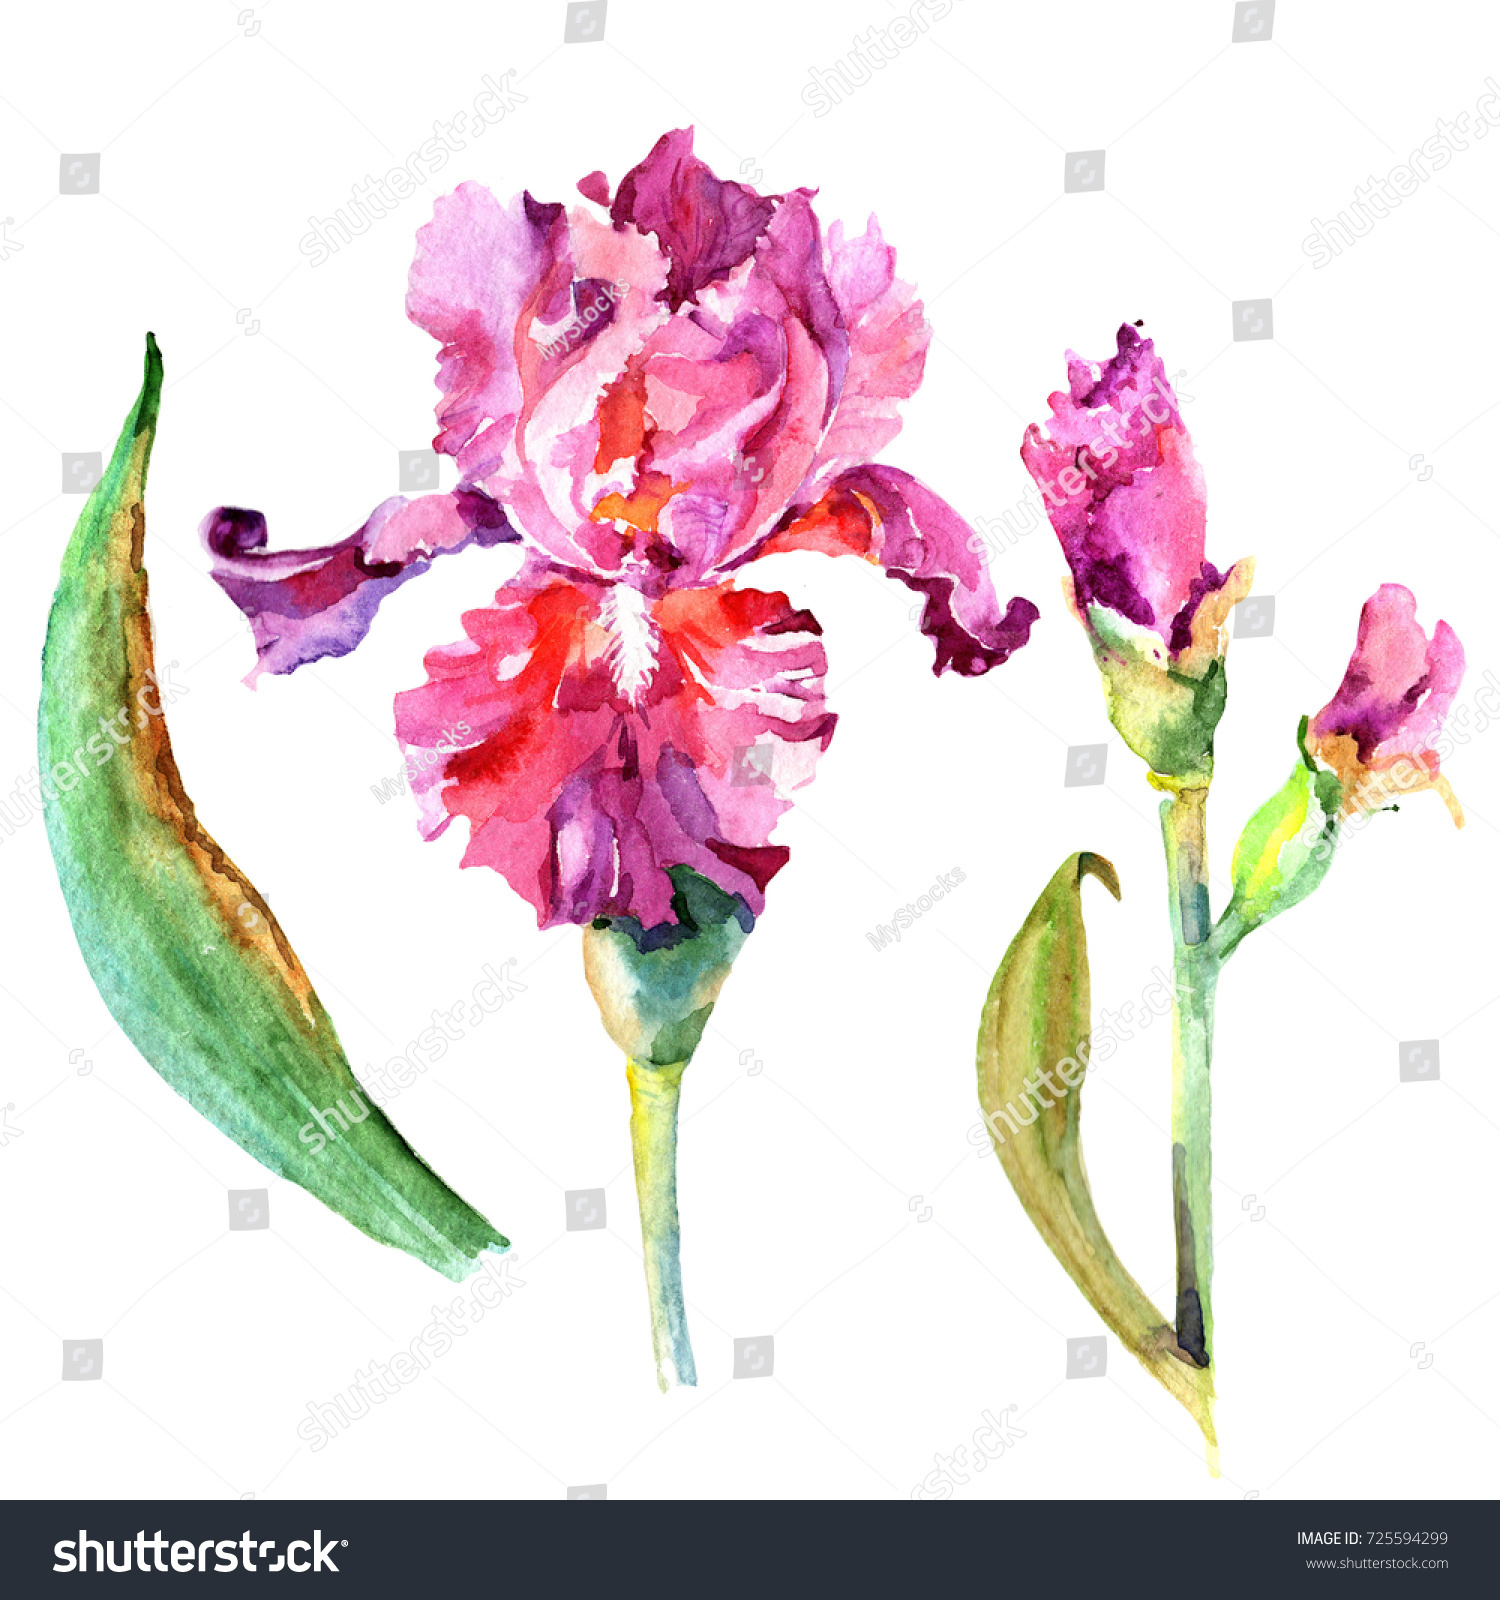 Wildflower Iris Flower Watercolor Style Isolated Stock Illustration